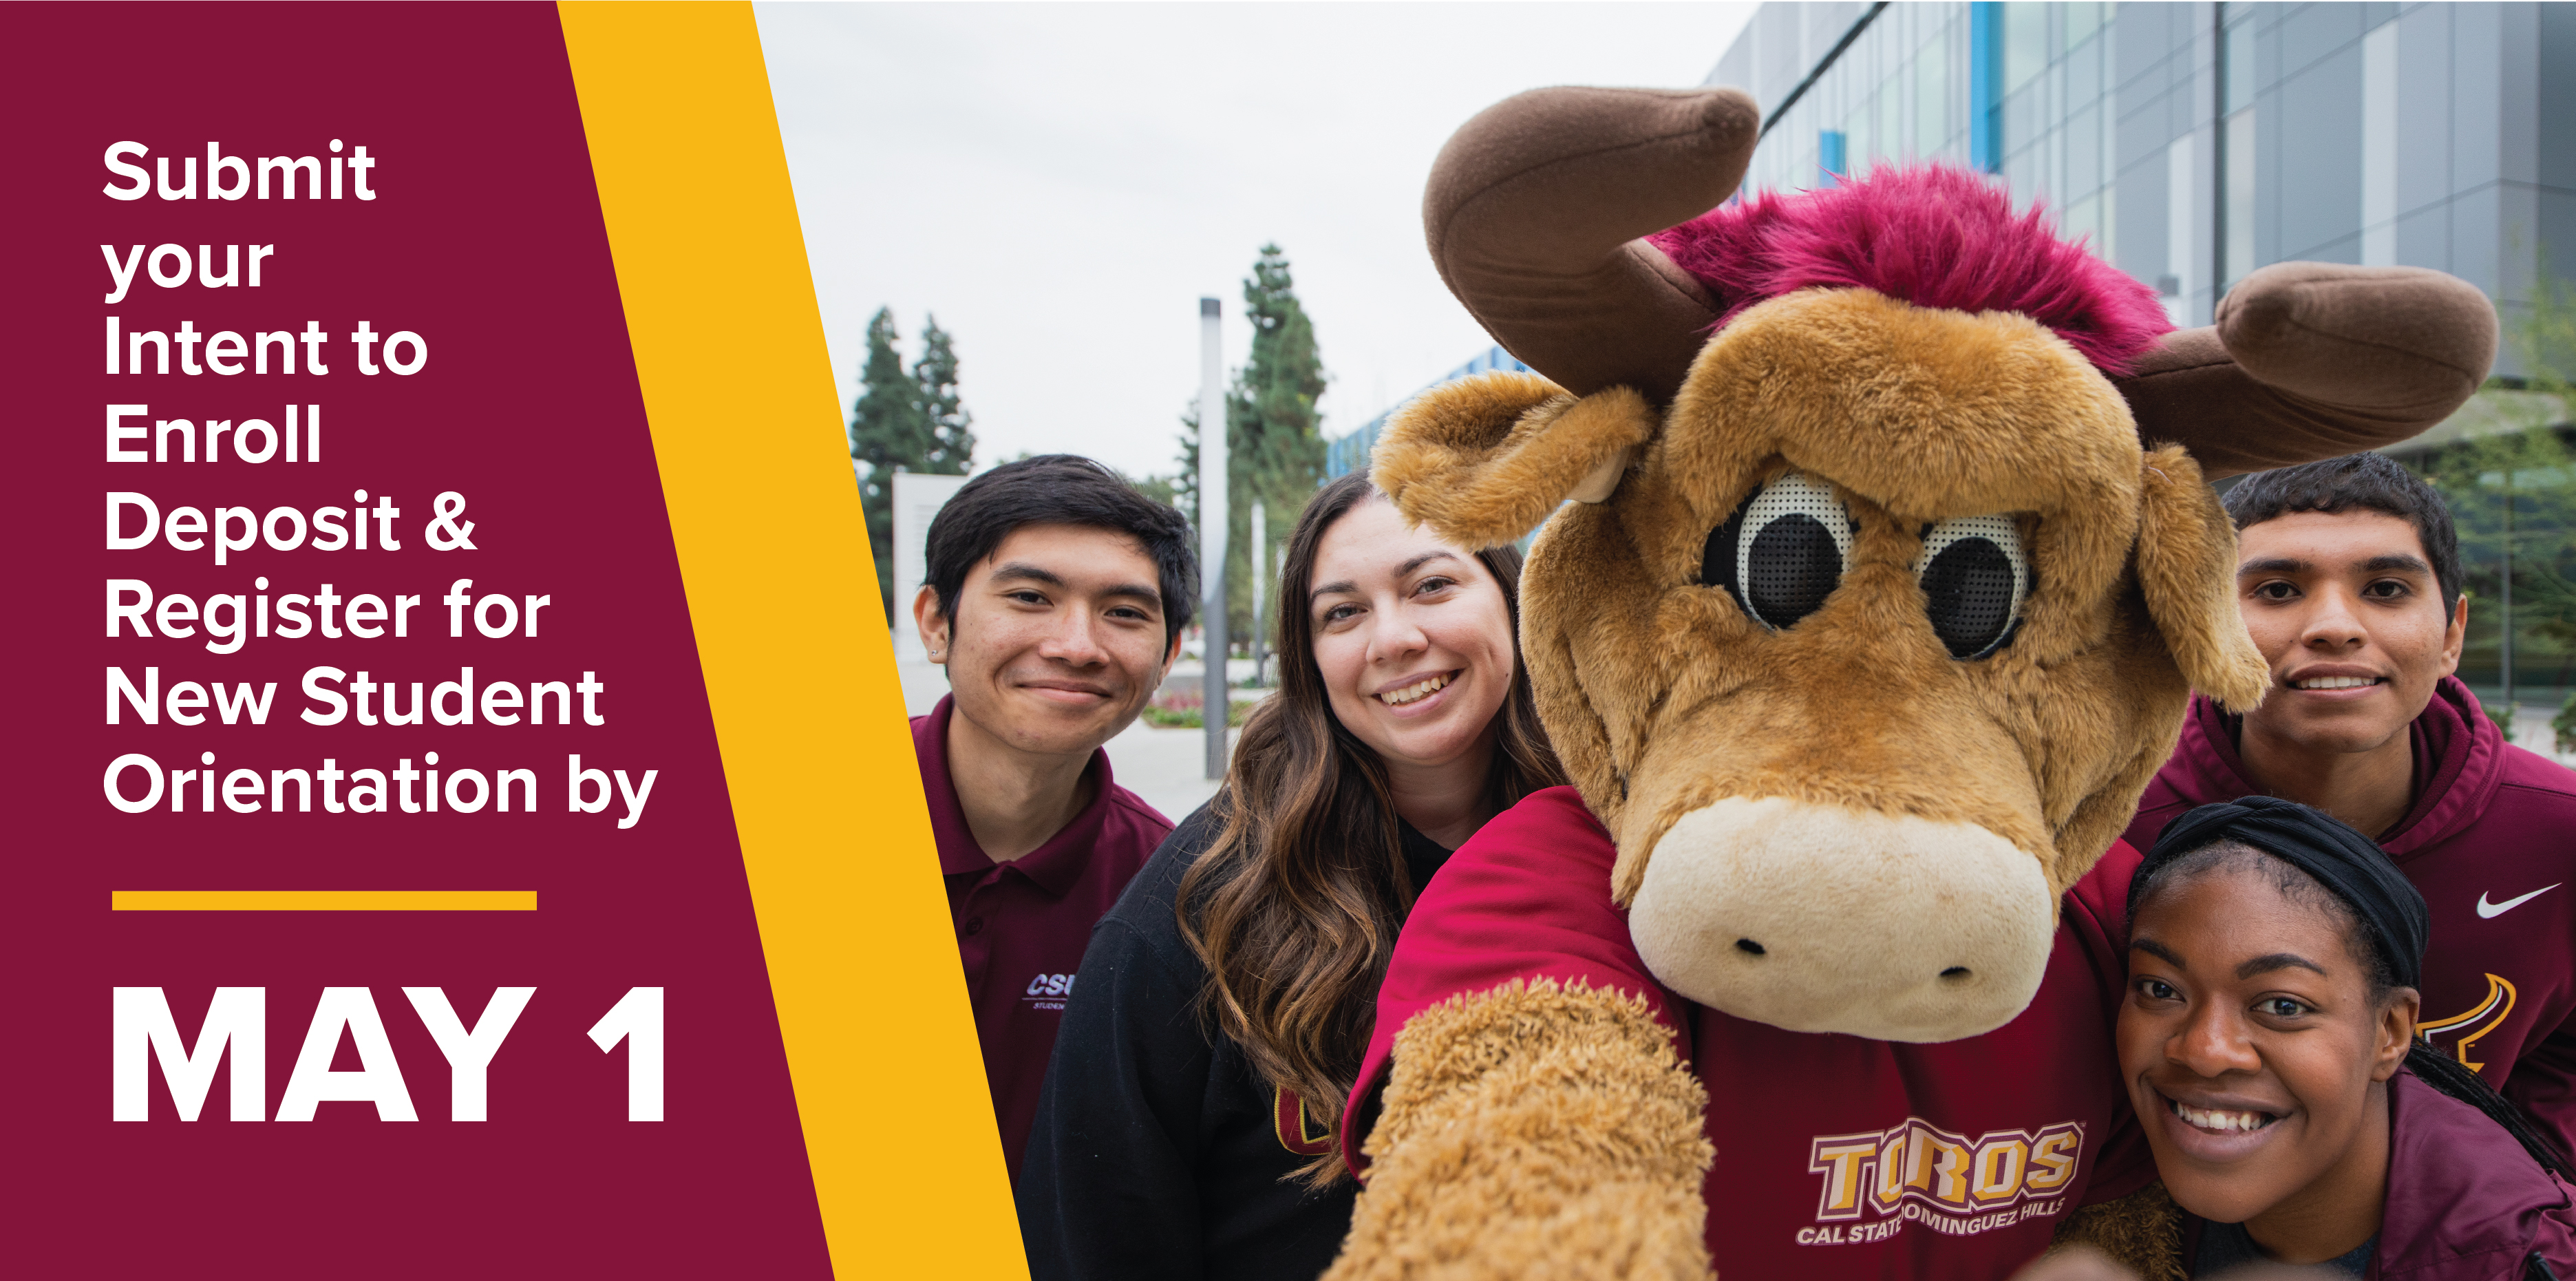 Submit your Intent to Enroll Deposit and Register for New Student Orientation by May 1st.